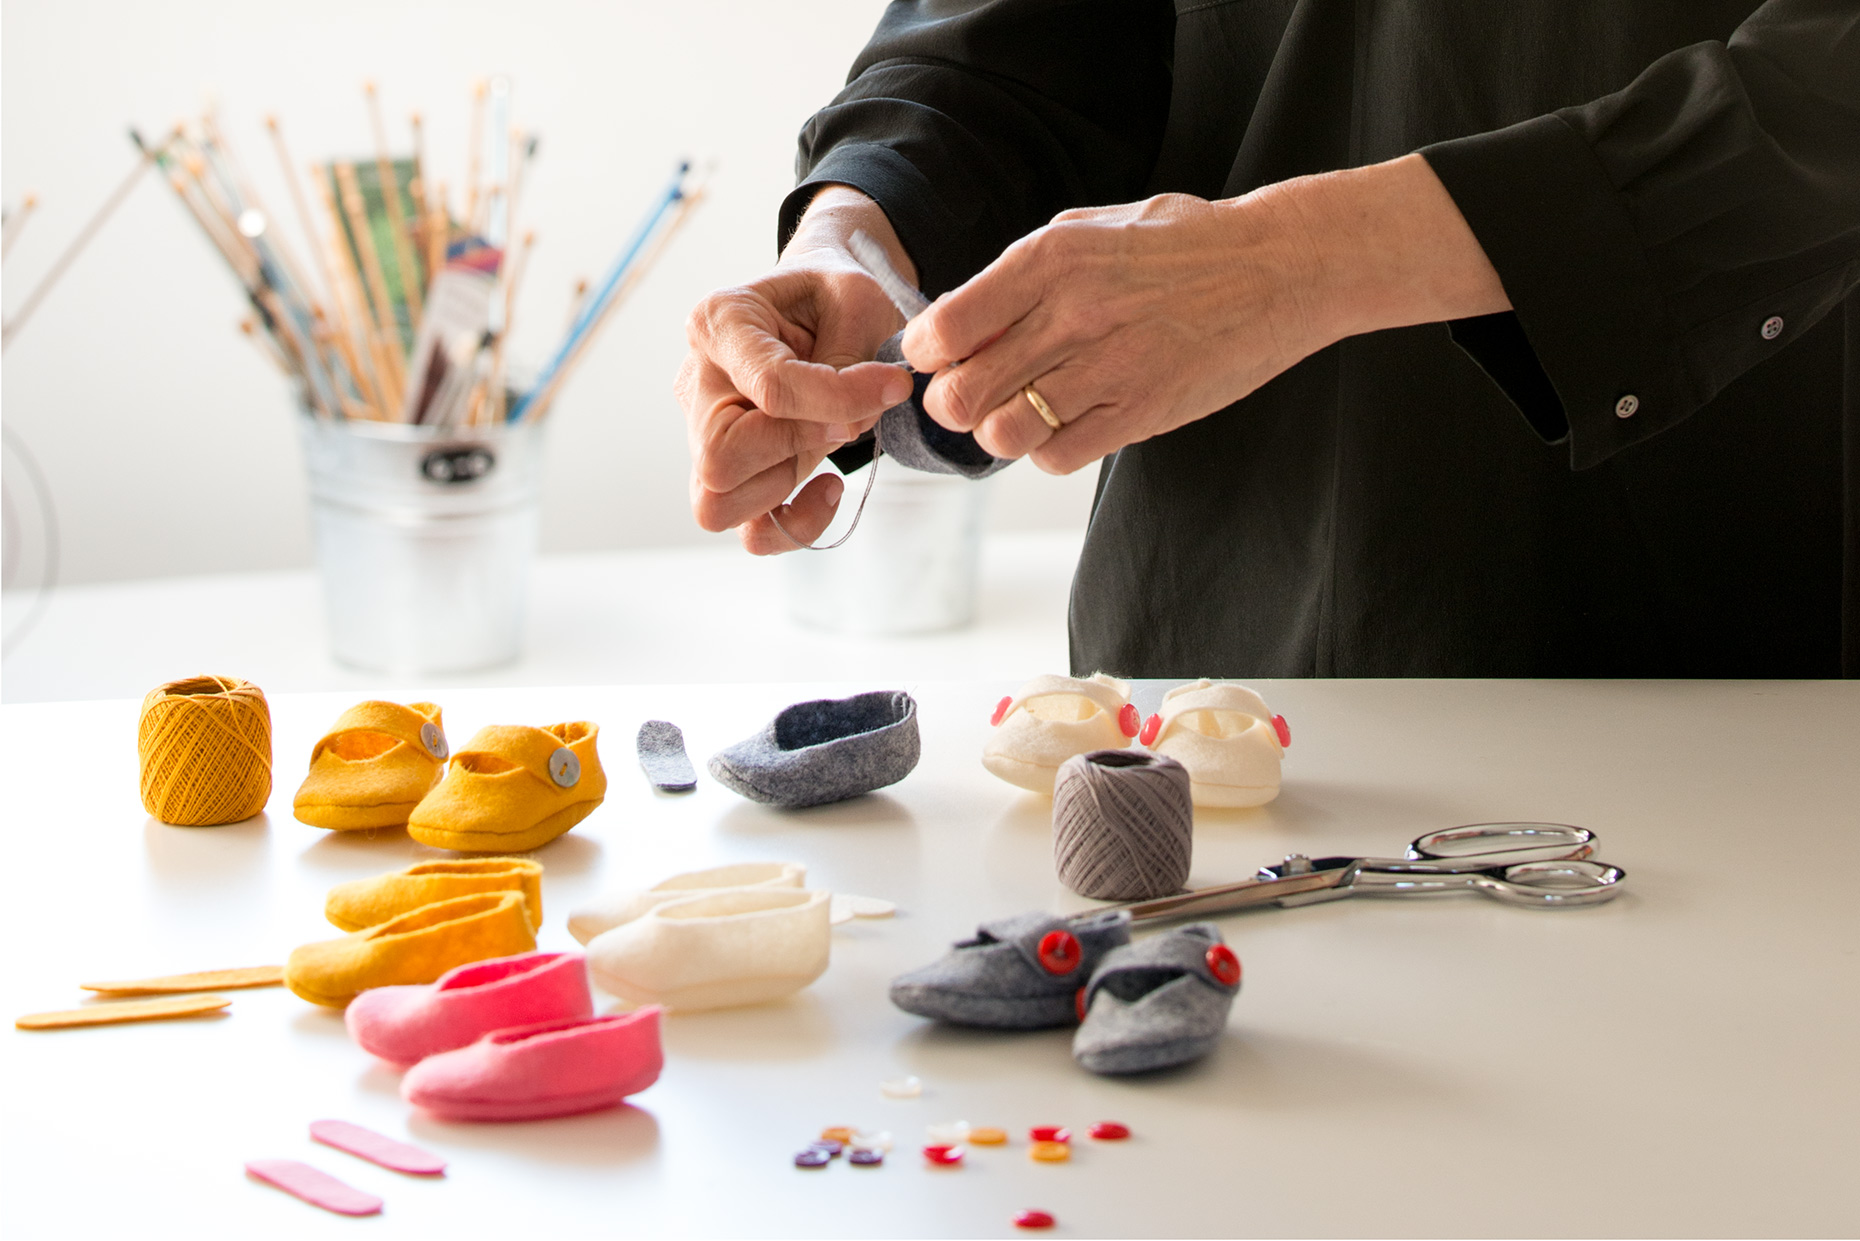 Photographer for business websites hands making doll shoes